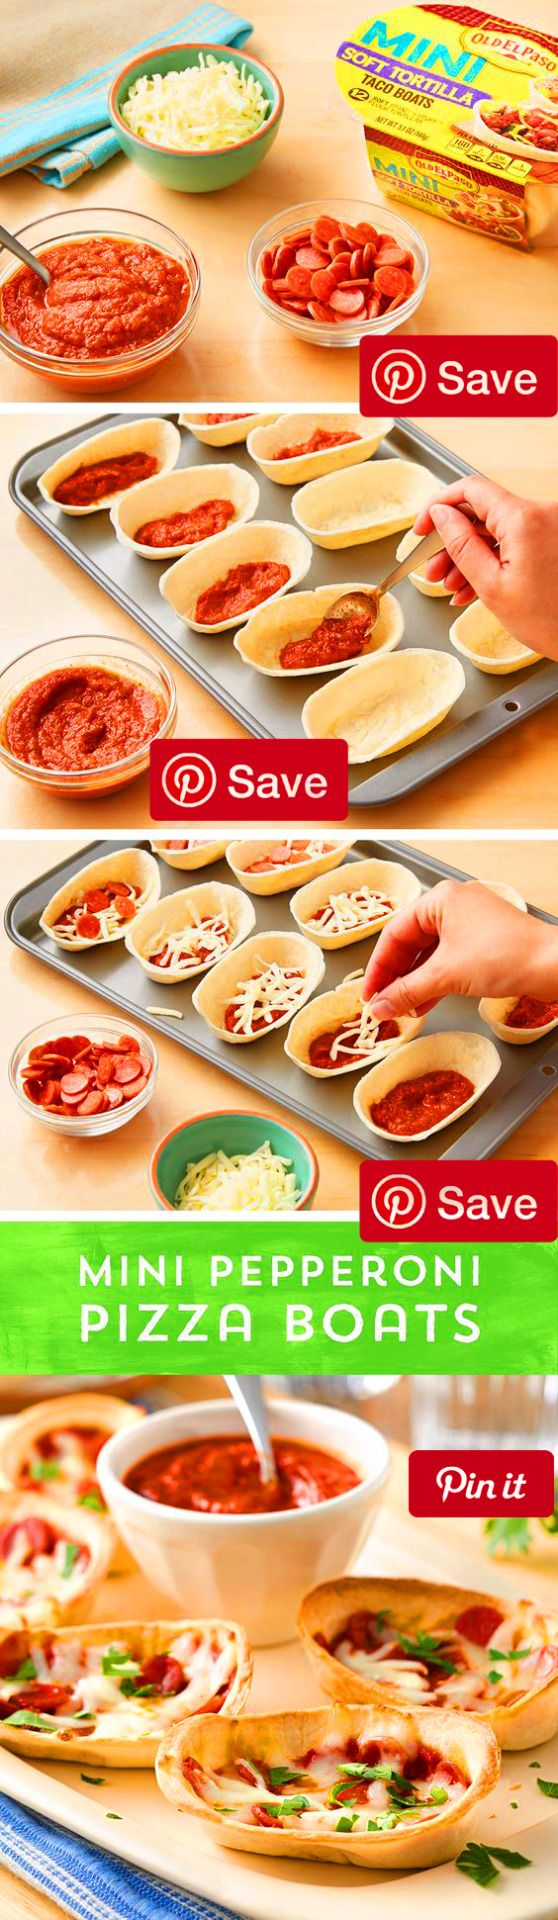 Need a tasty snack or a delicious dish to share? These Mini Pepperoni Pizza boats are sure to make you the snack champion! Theres no need to decide between pizza and tacos - because you can have both! Fill Old El Paso Mini Taco Boats with your favorite pizza sauce mini pepperonis and shredded mozzarella then pop them in the oven for the perfect pizza snack! These bite-sized pizza boats are bound to be a hit with your crowd - and theyre ready to eat in 15 minutes or less! Populars